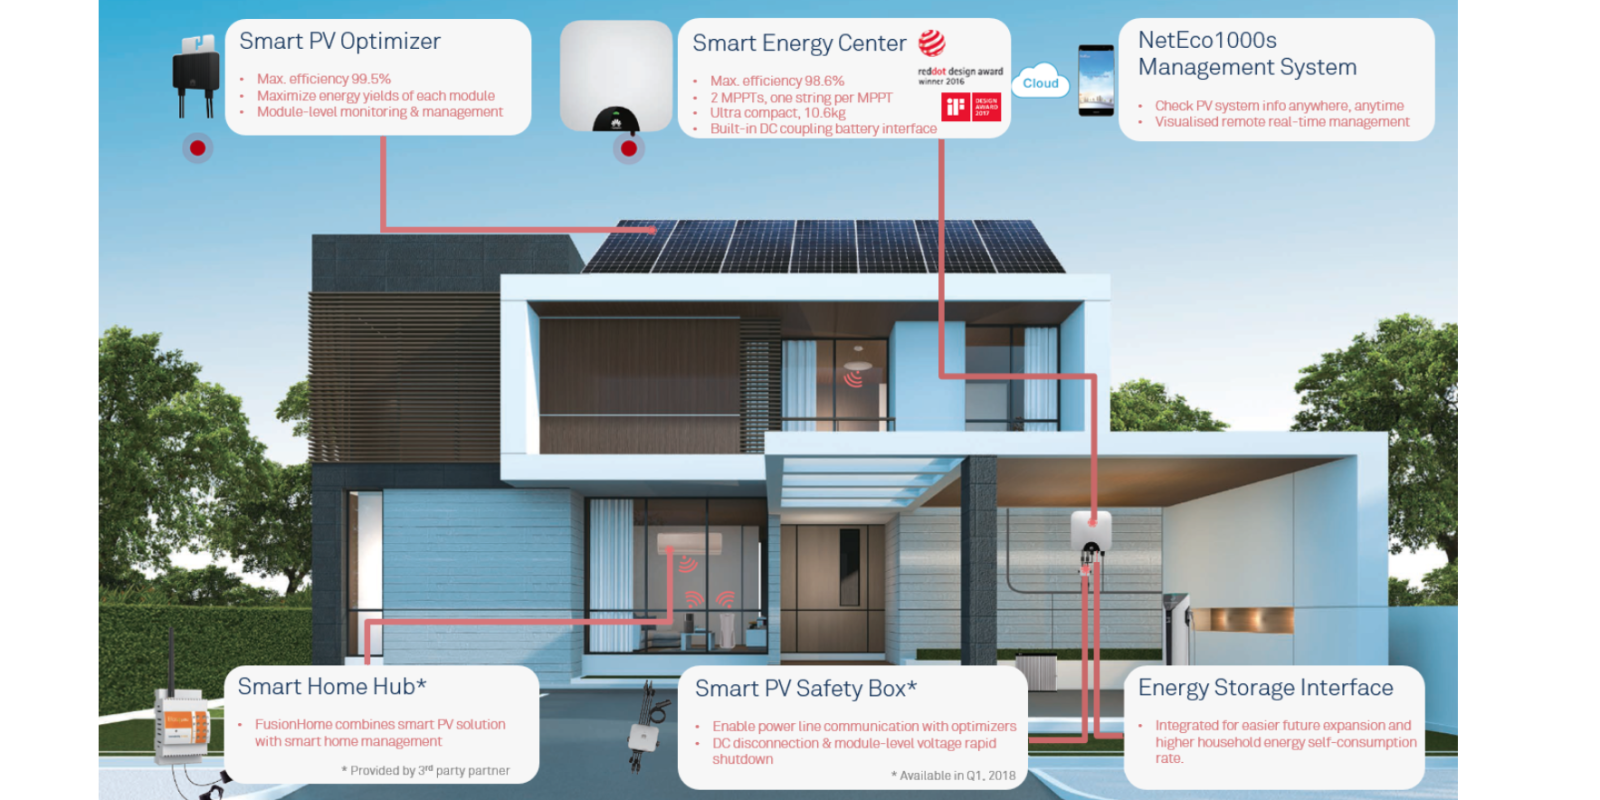 Huawei's 'FusionHome' solar inverter really wants your house to come alive